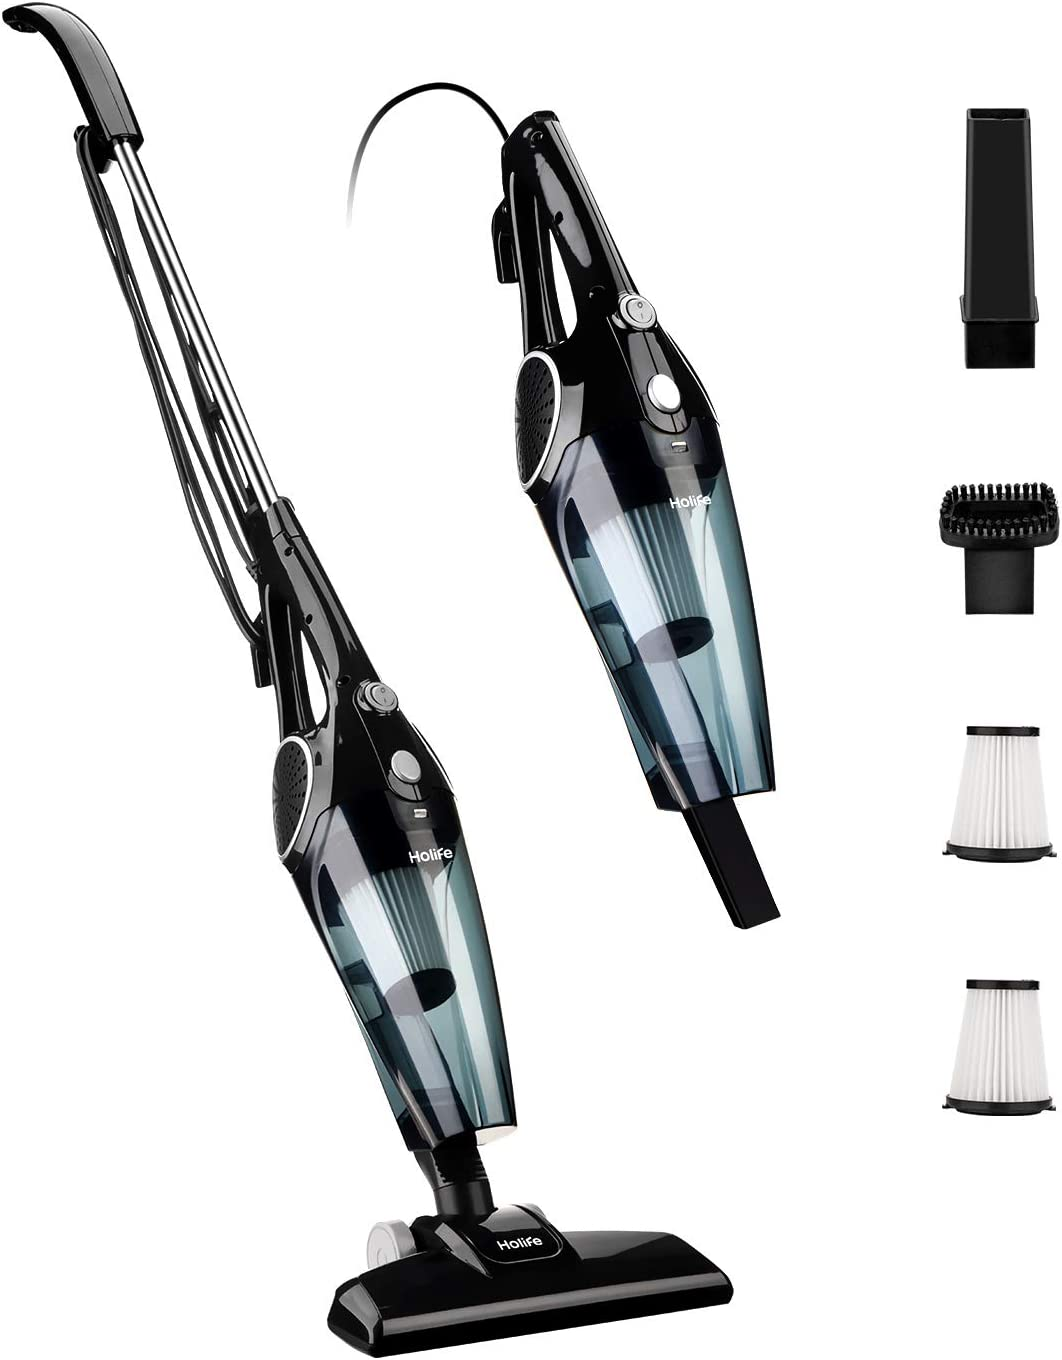 Holife Stick Vacuum Cleaner 12Kpa 600w for £33.98